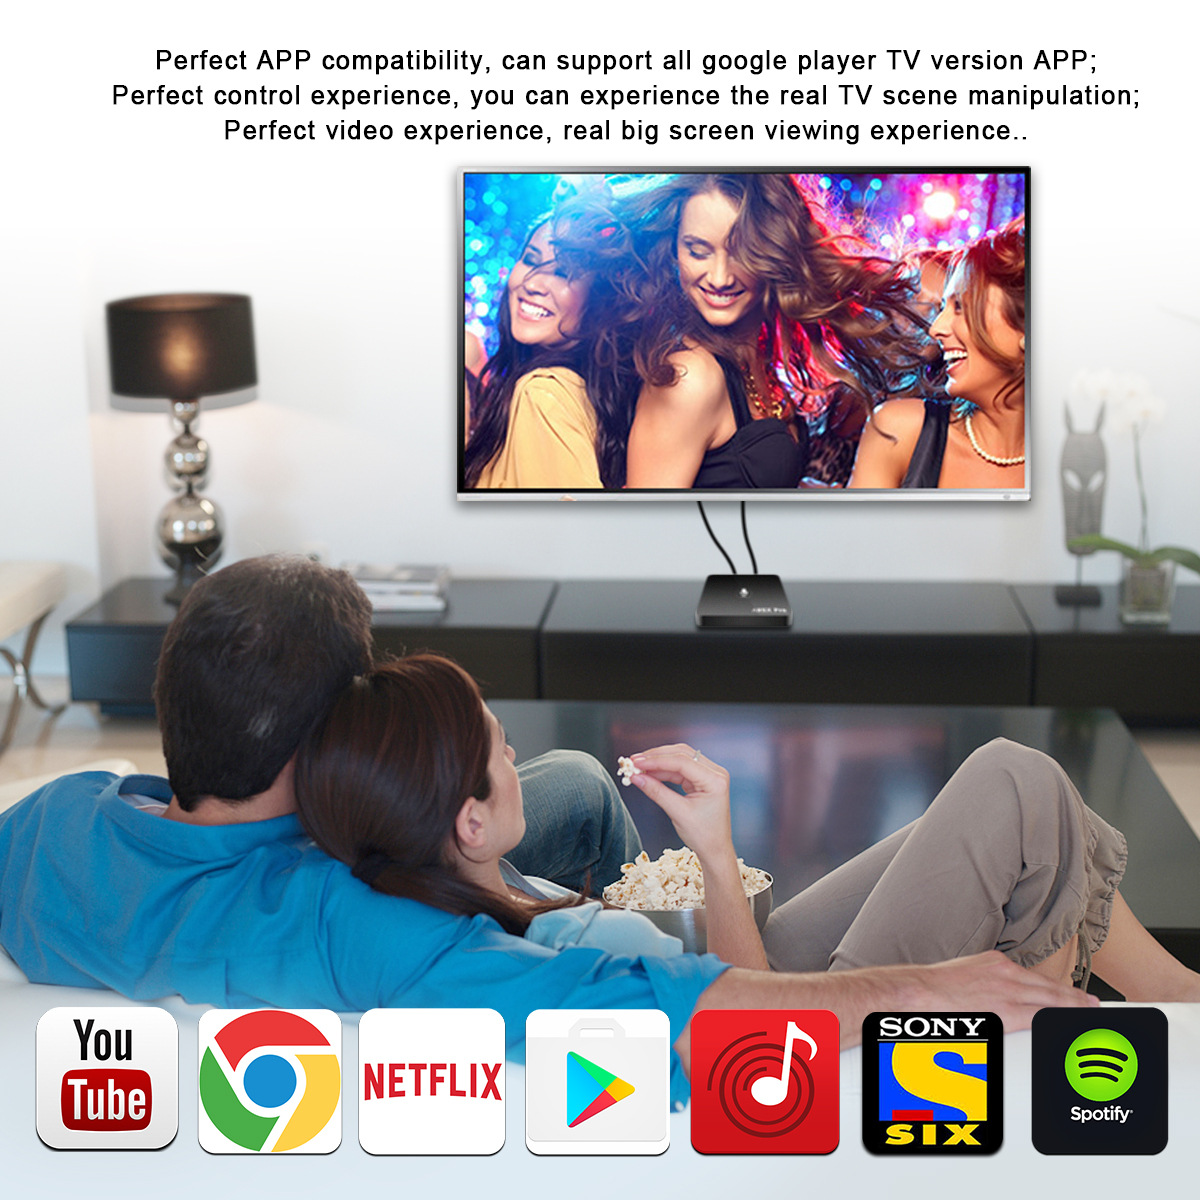 A95X Pro Google Android 7.1 TV Box 2 GB RAM 16 GB ROM 4 K UHD Amlogic Media Player com Controle Remoto de Voz 2.4G wi-fi